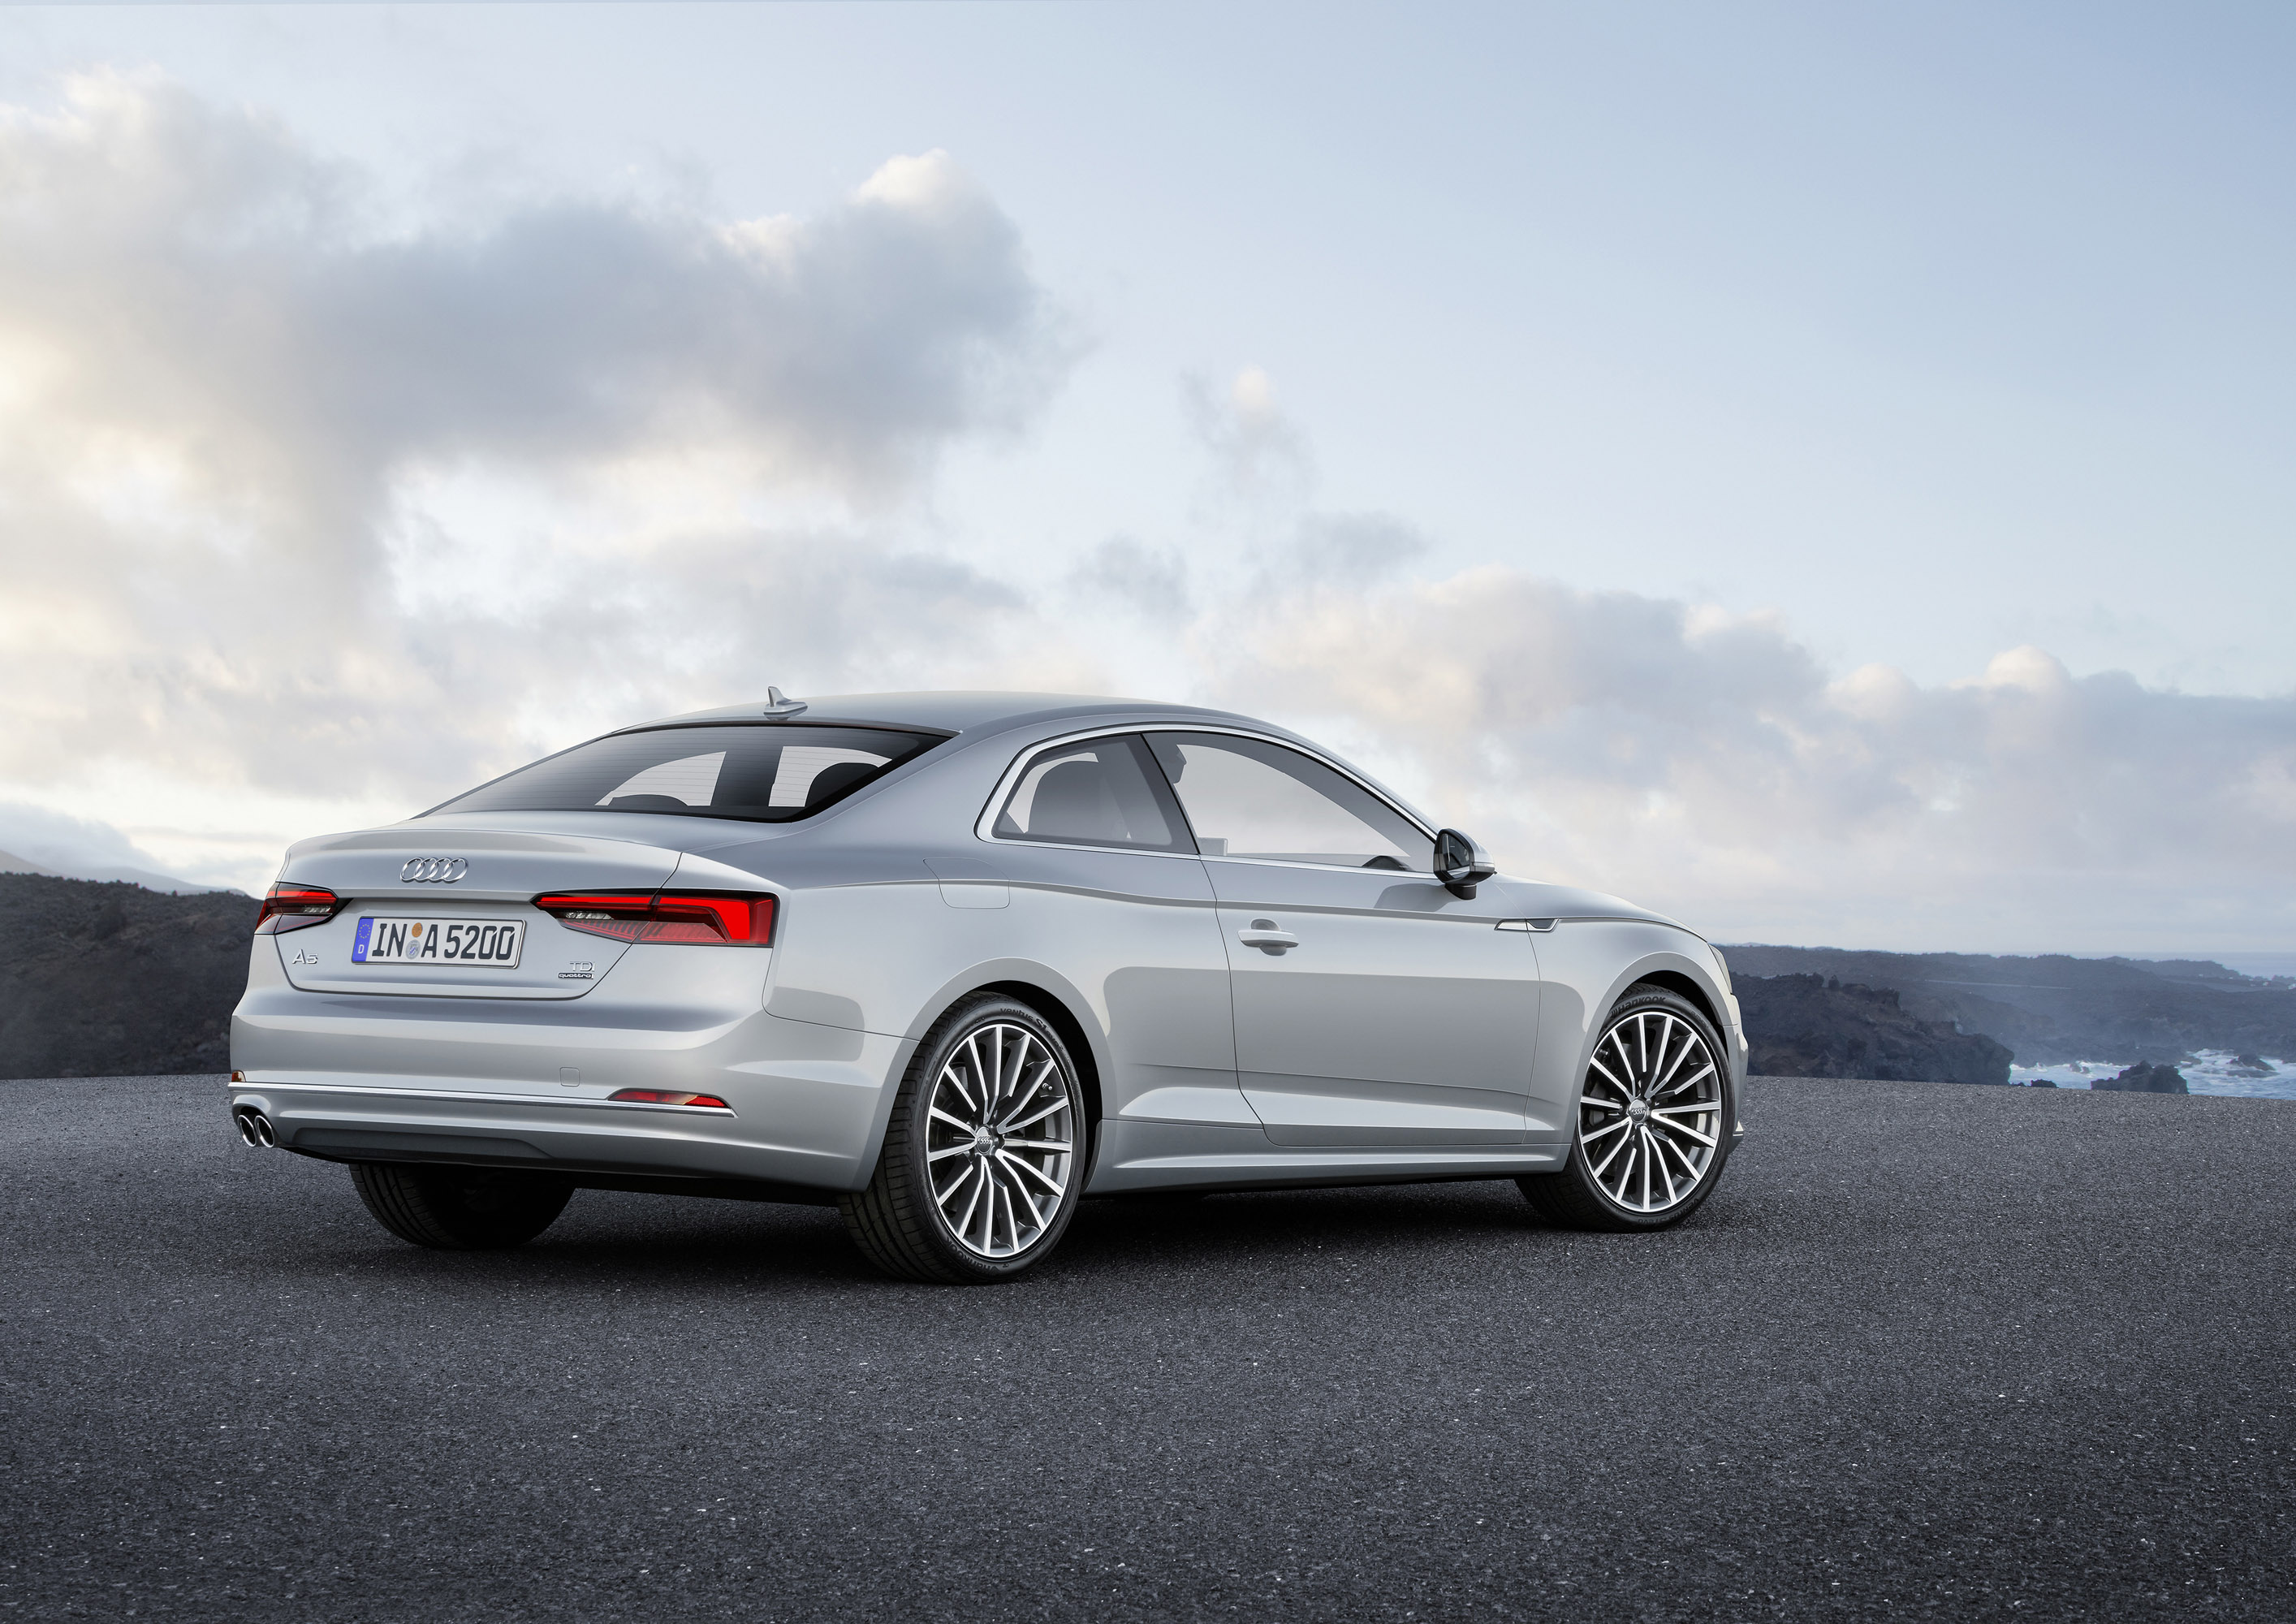 Audi A5 And S5 Have Just Made Their World Premiere